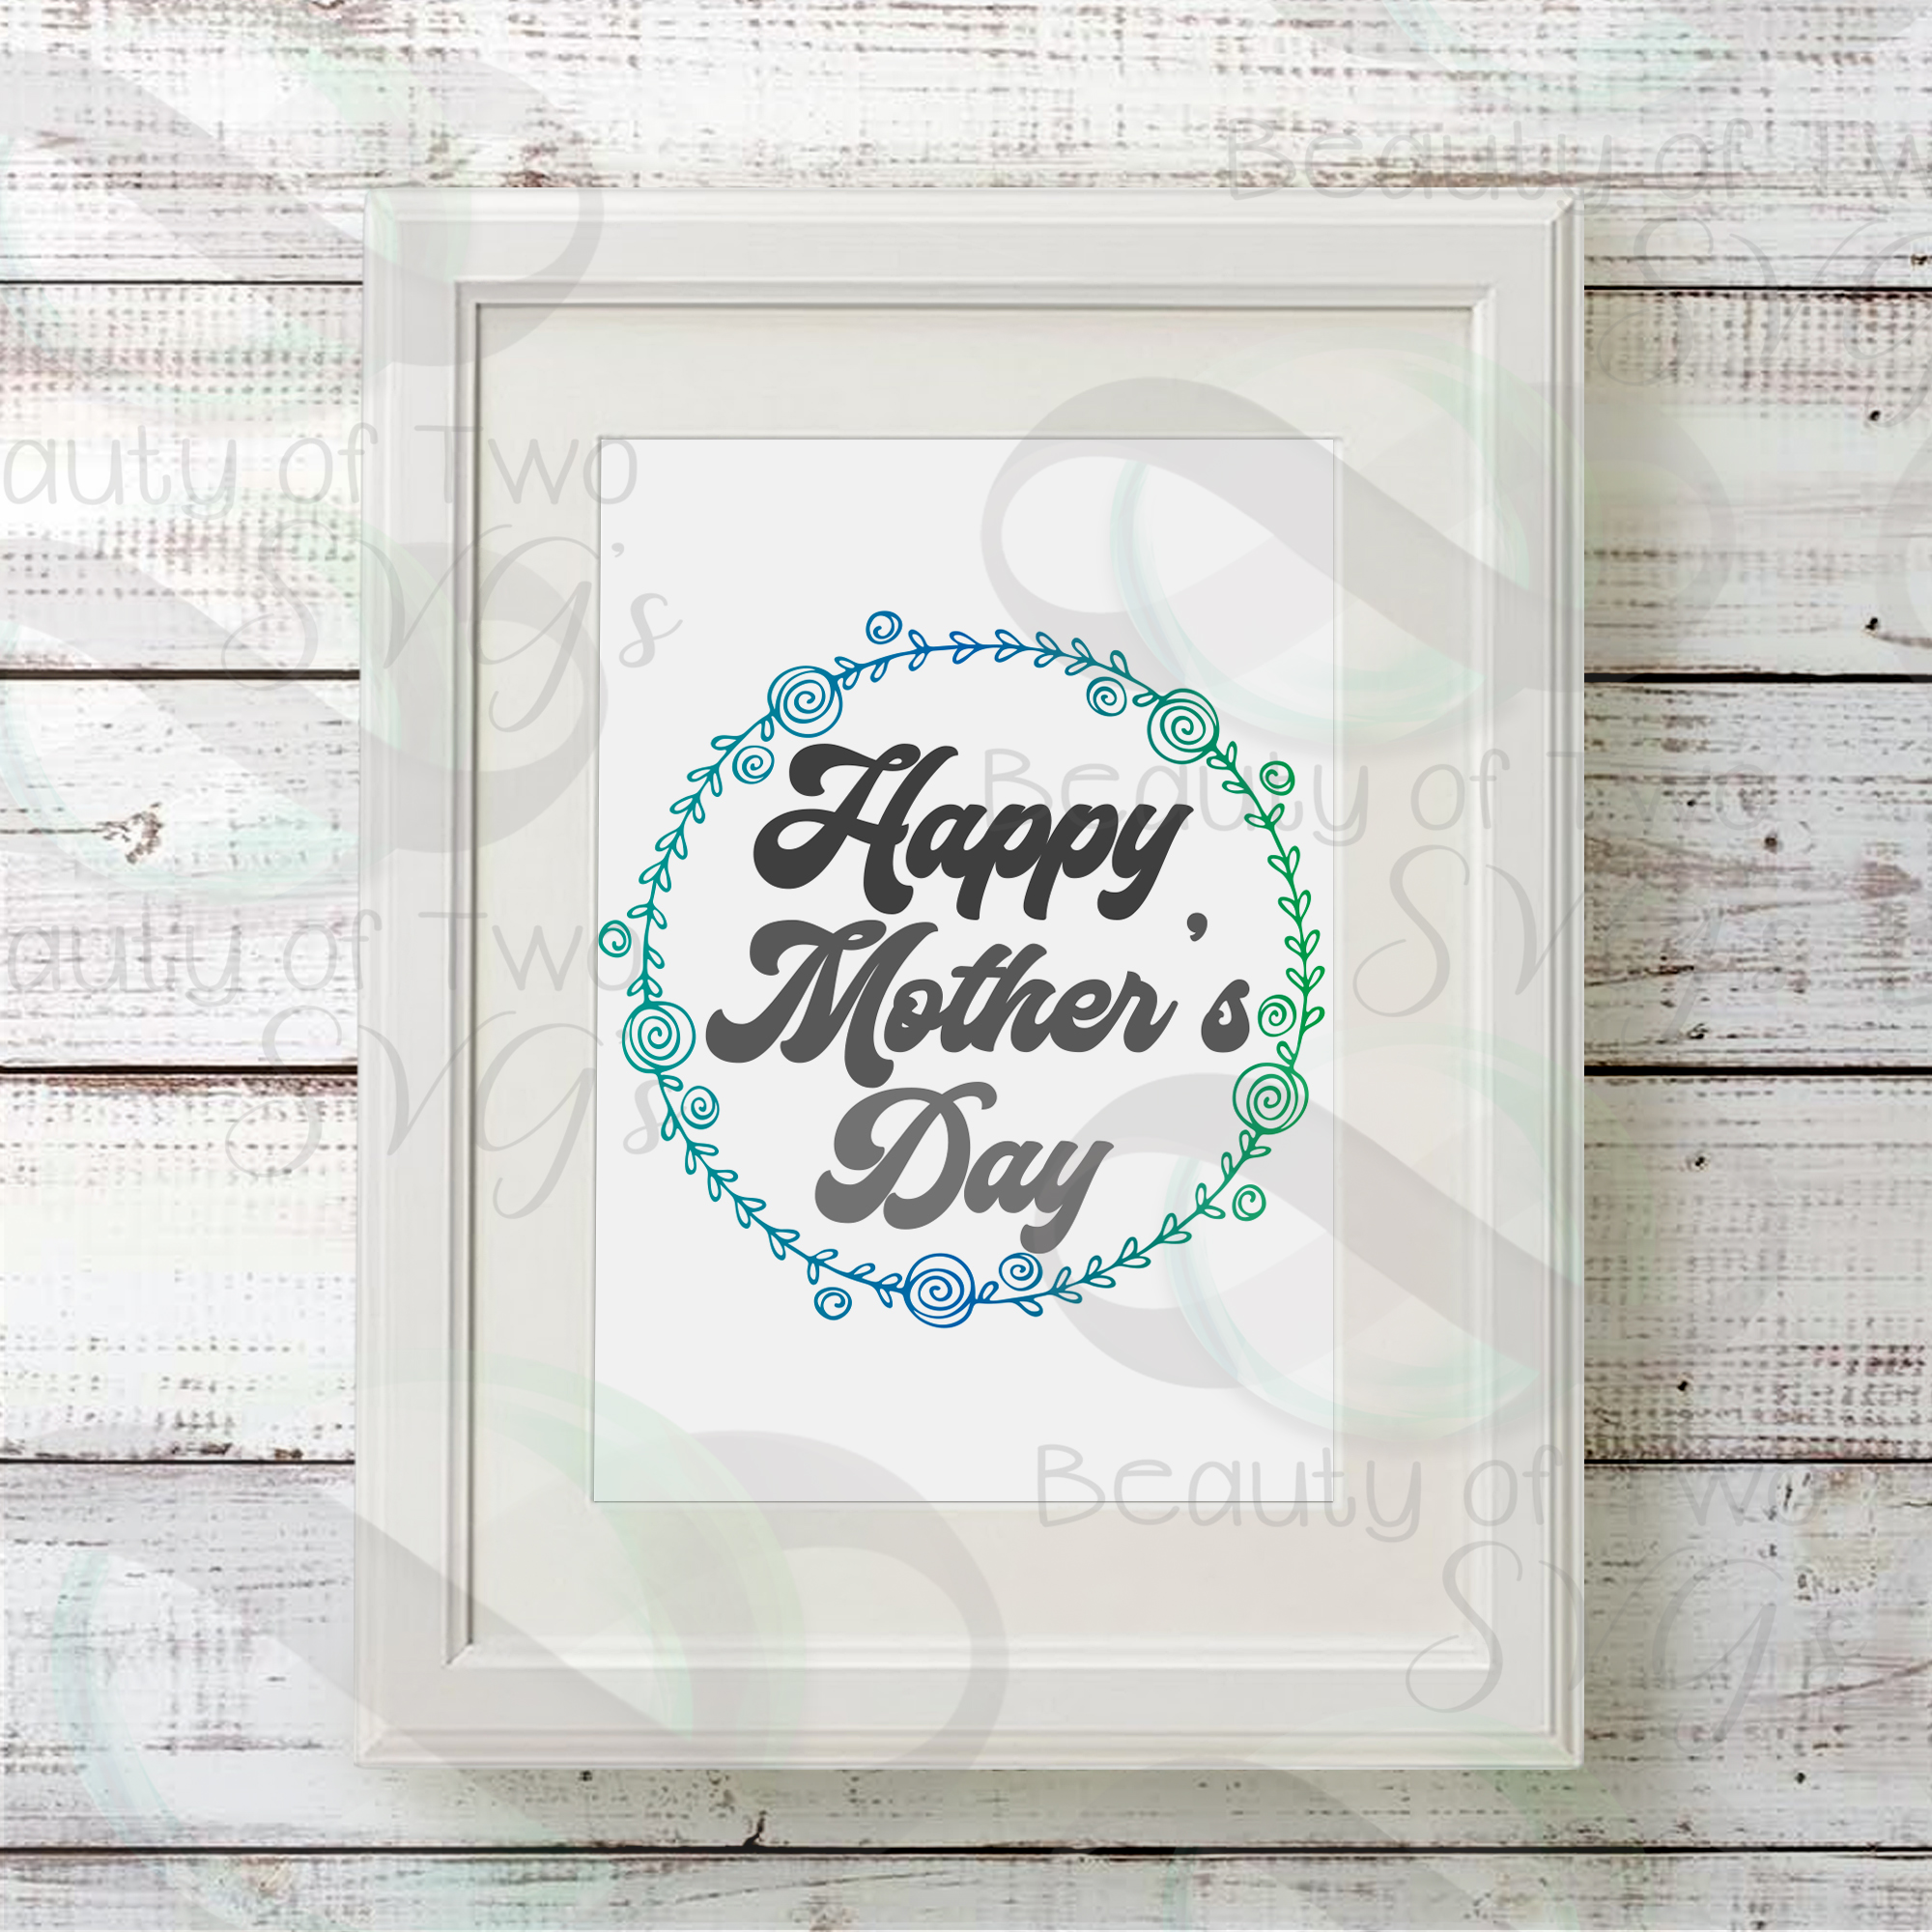 Mothers Day svg, Happy Mother's Day wreath svg, Mom svg example image 2